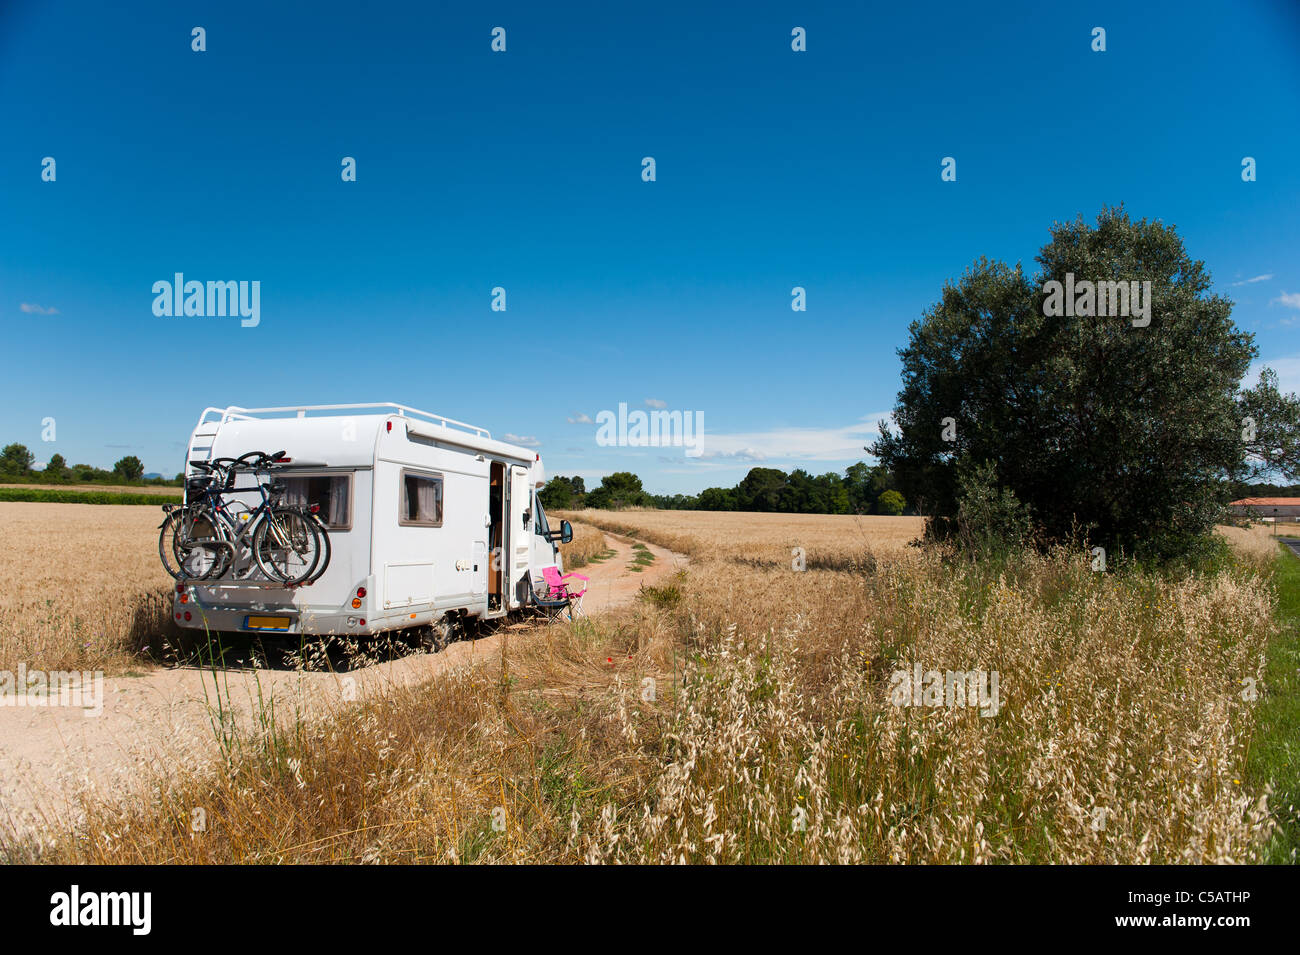 camper or mobil home in free nature - Stock Image